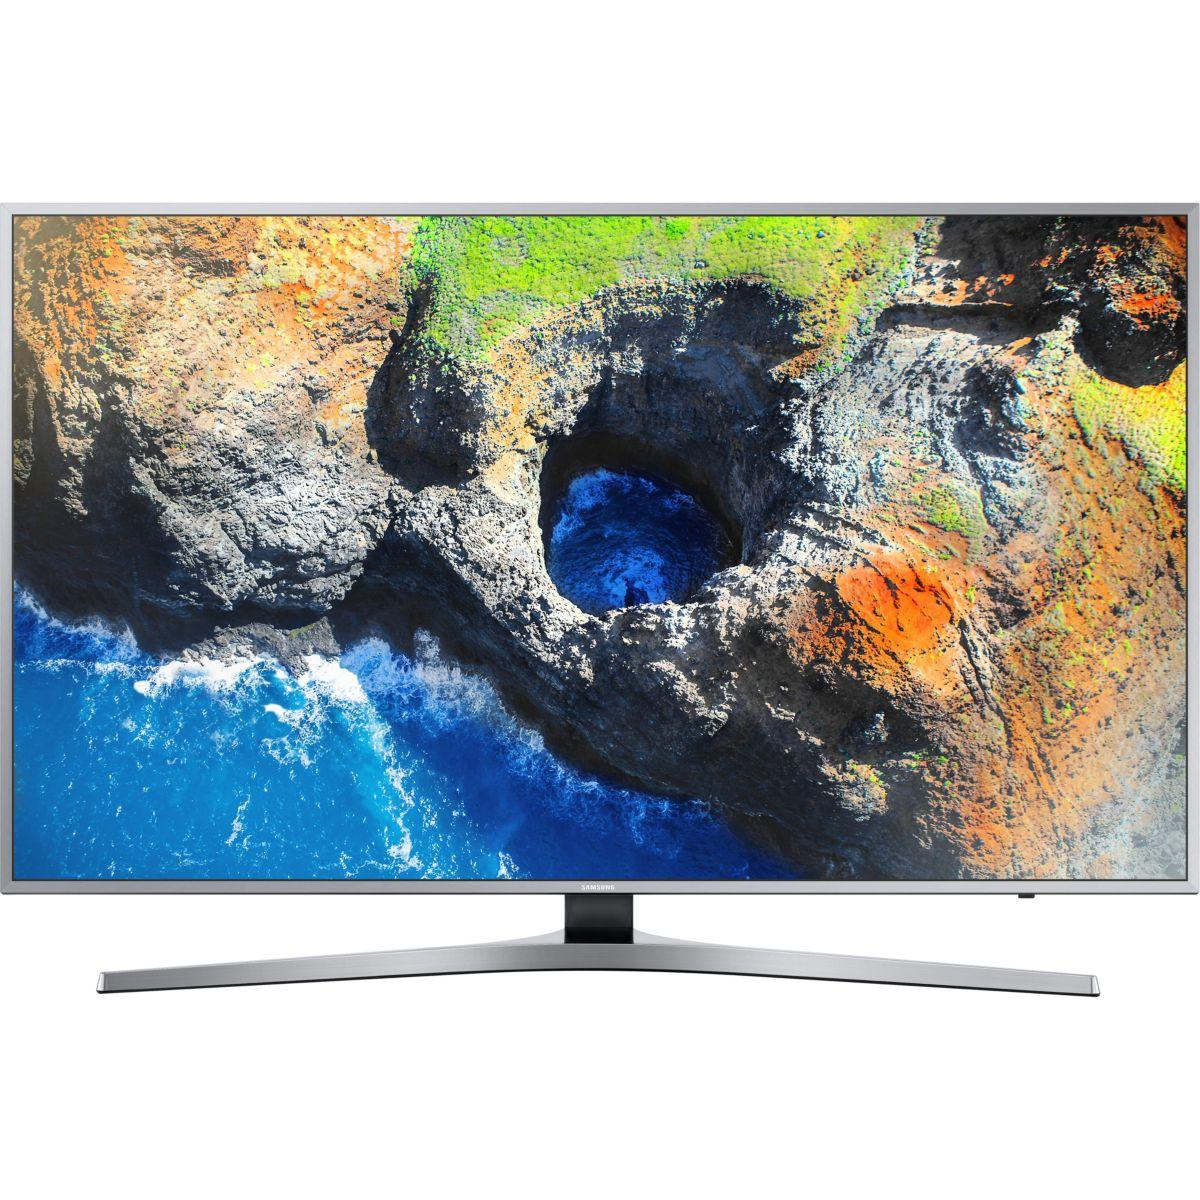 Tv samsung ue55mu6405 4k hdr smart cryst (photo)